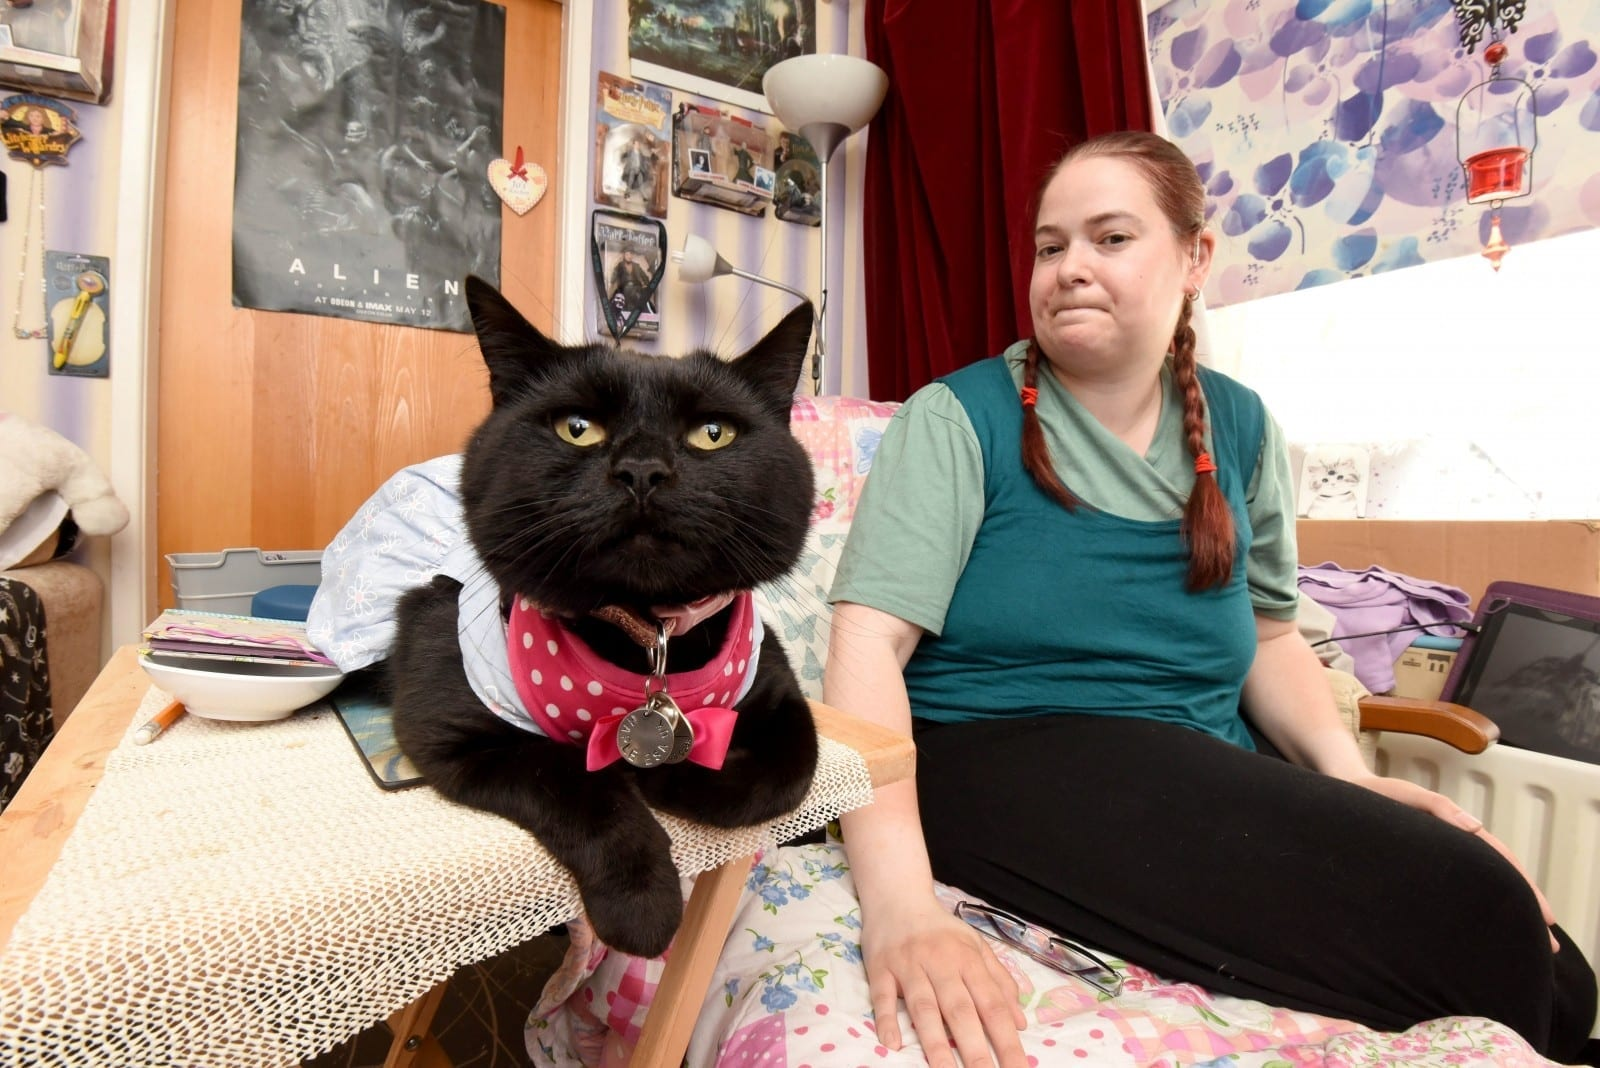 Disabled Woman Whose Cat HEADBUTTS Her When She Is Going Into Spasm Wants Legal Recognition For Emotional Support Animals